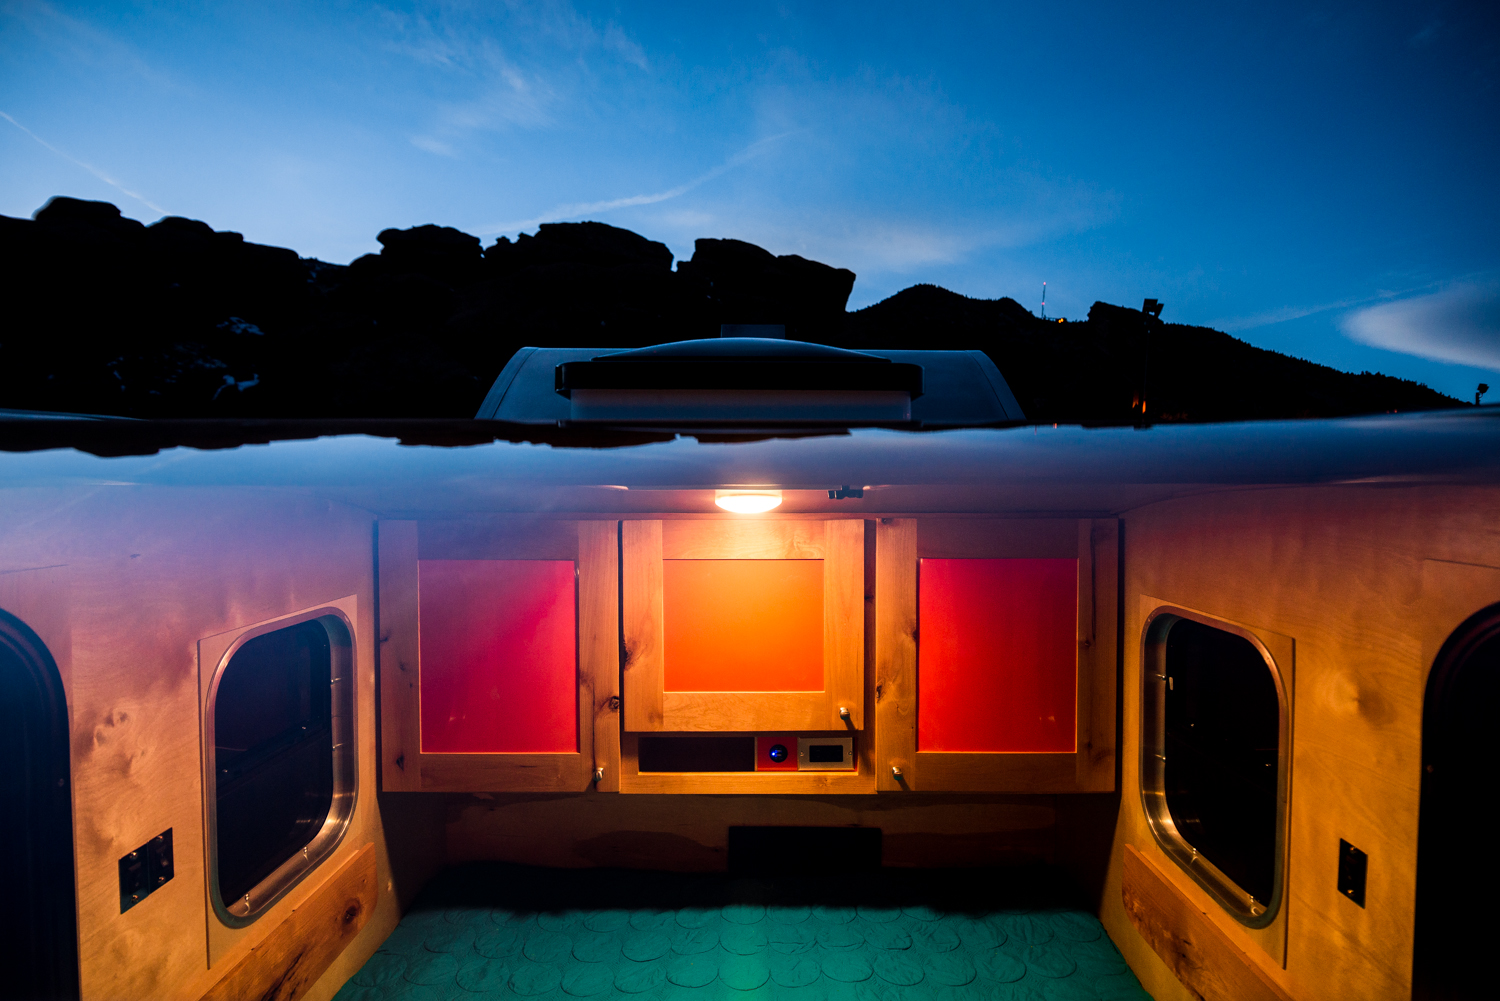 One of the largest skylights in the industry lets you see the stars as you sleep, and adds to the spacious feeling inside the teardrop trailer.